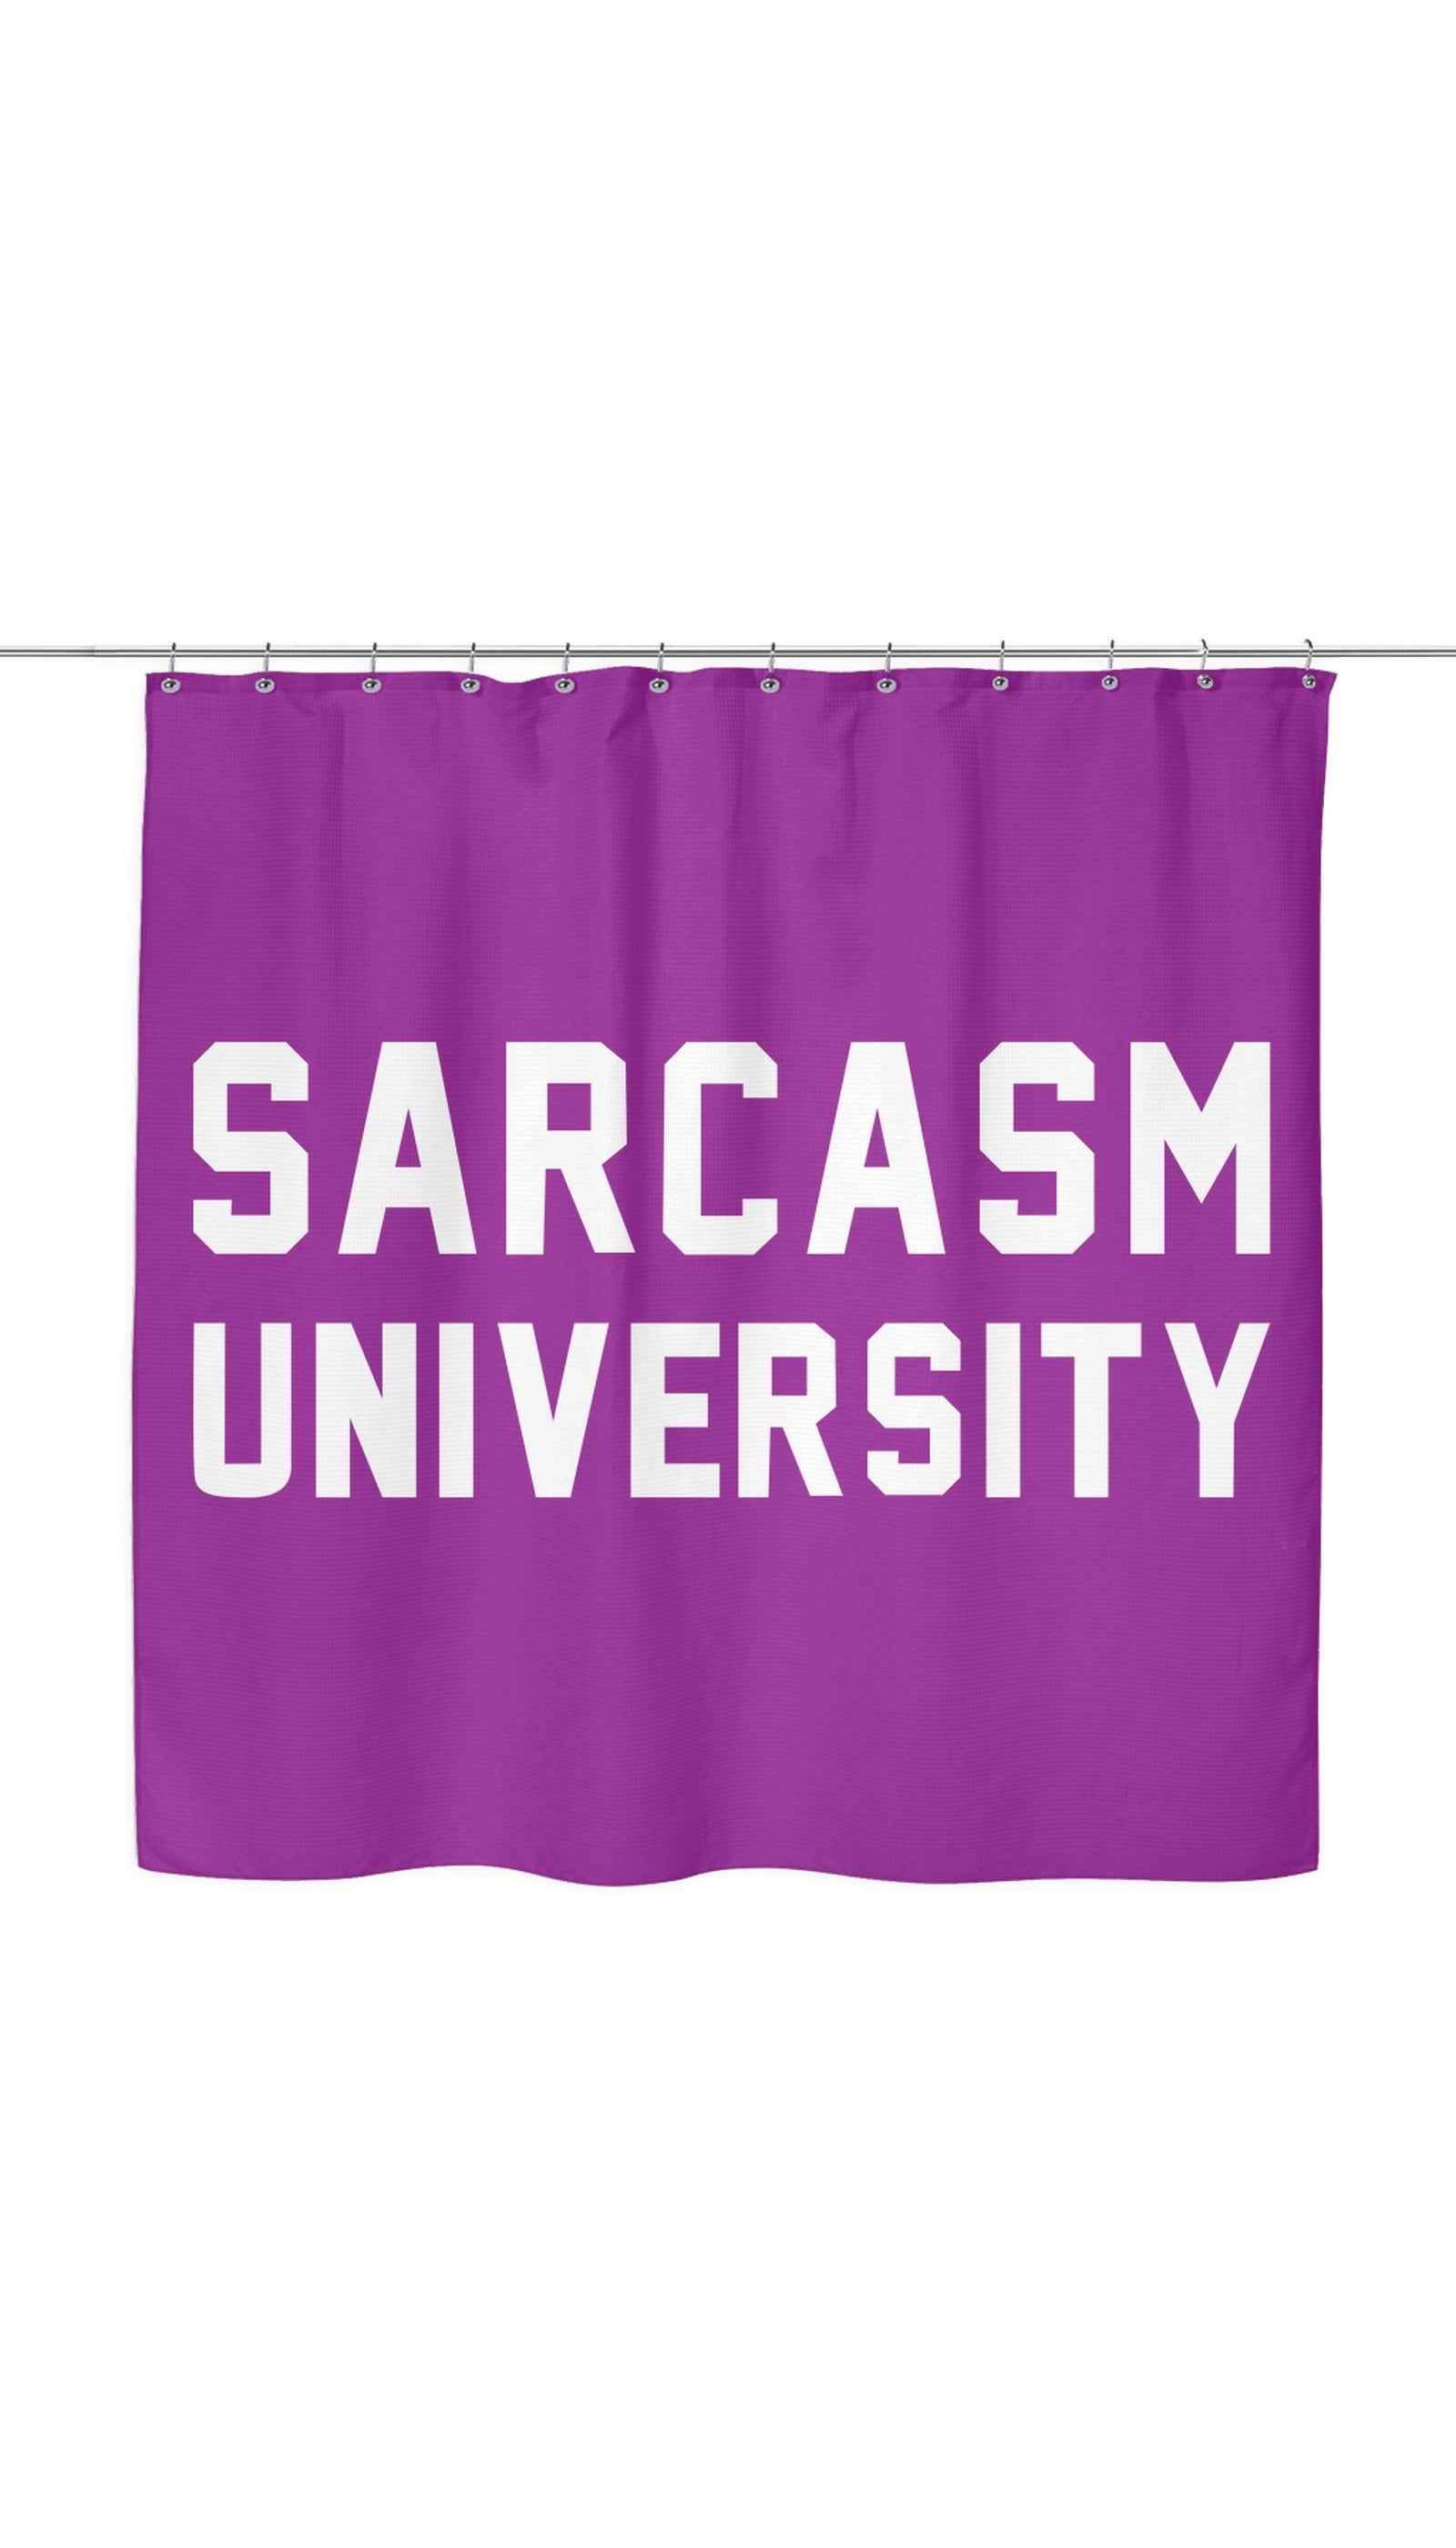 Sarcasm University Shower Curtain